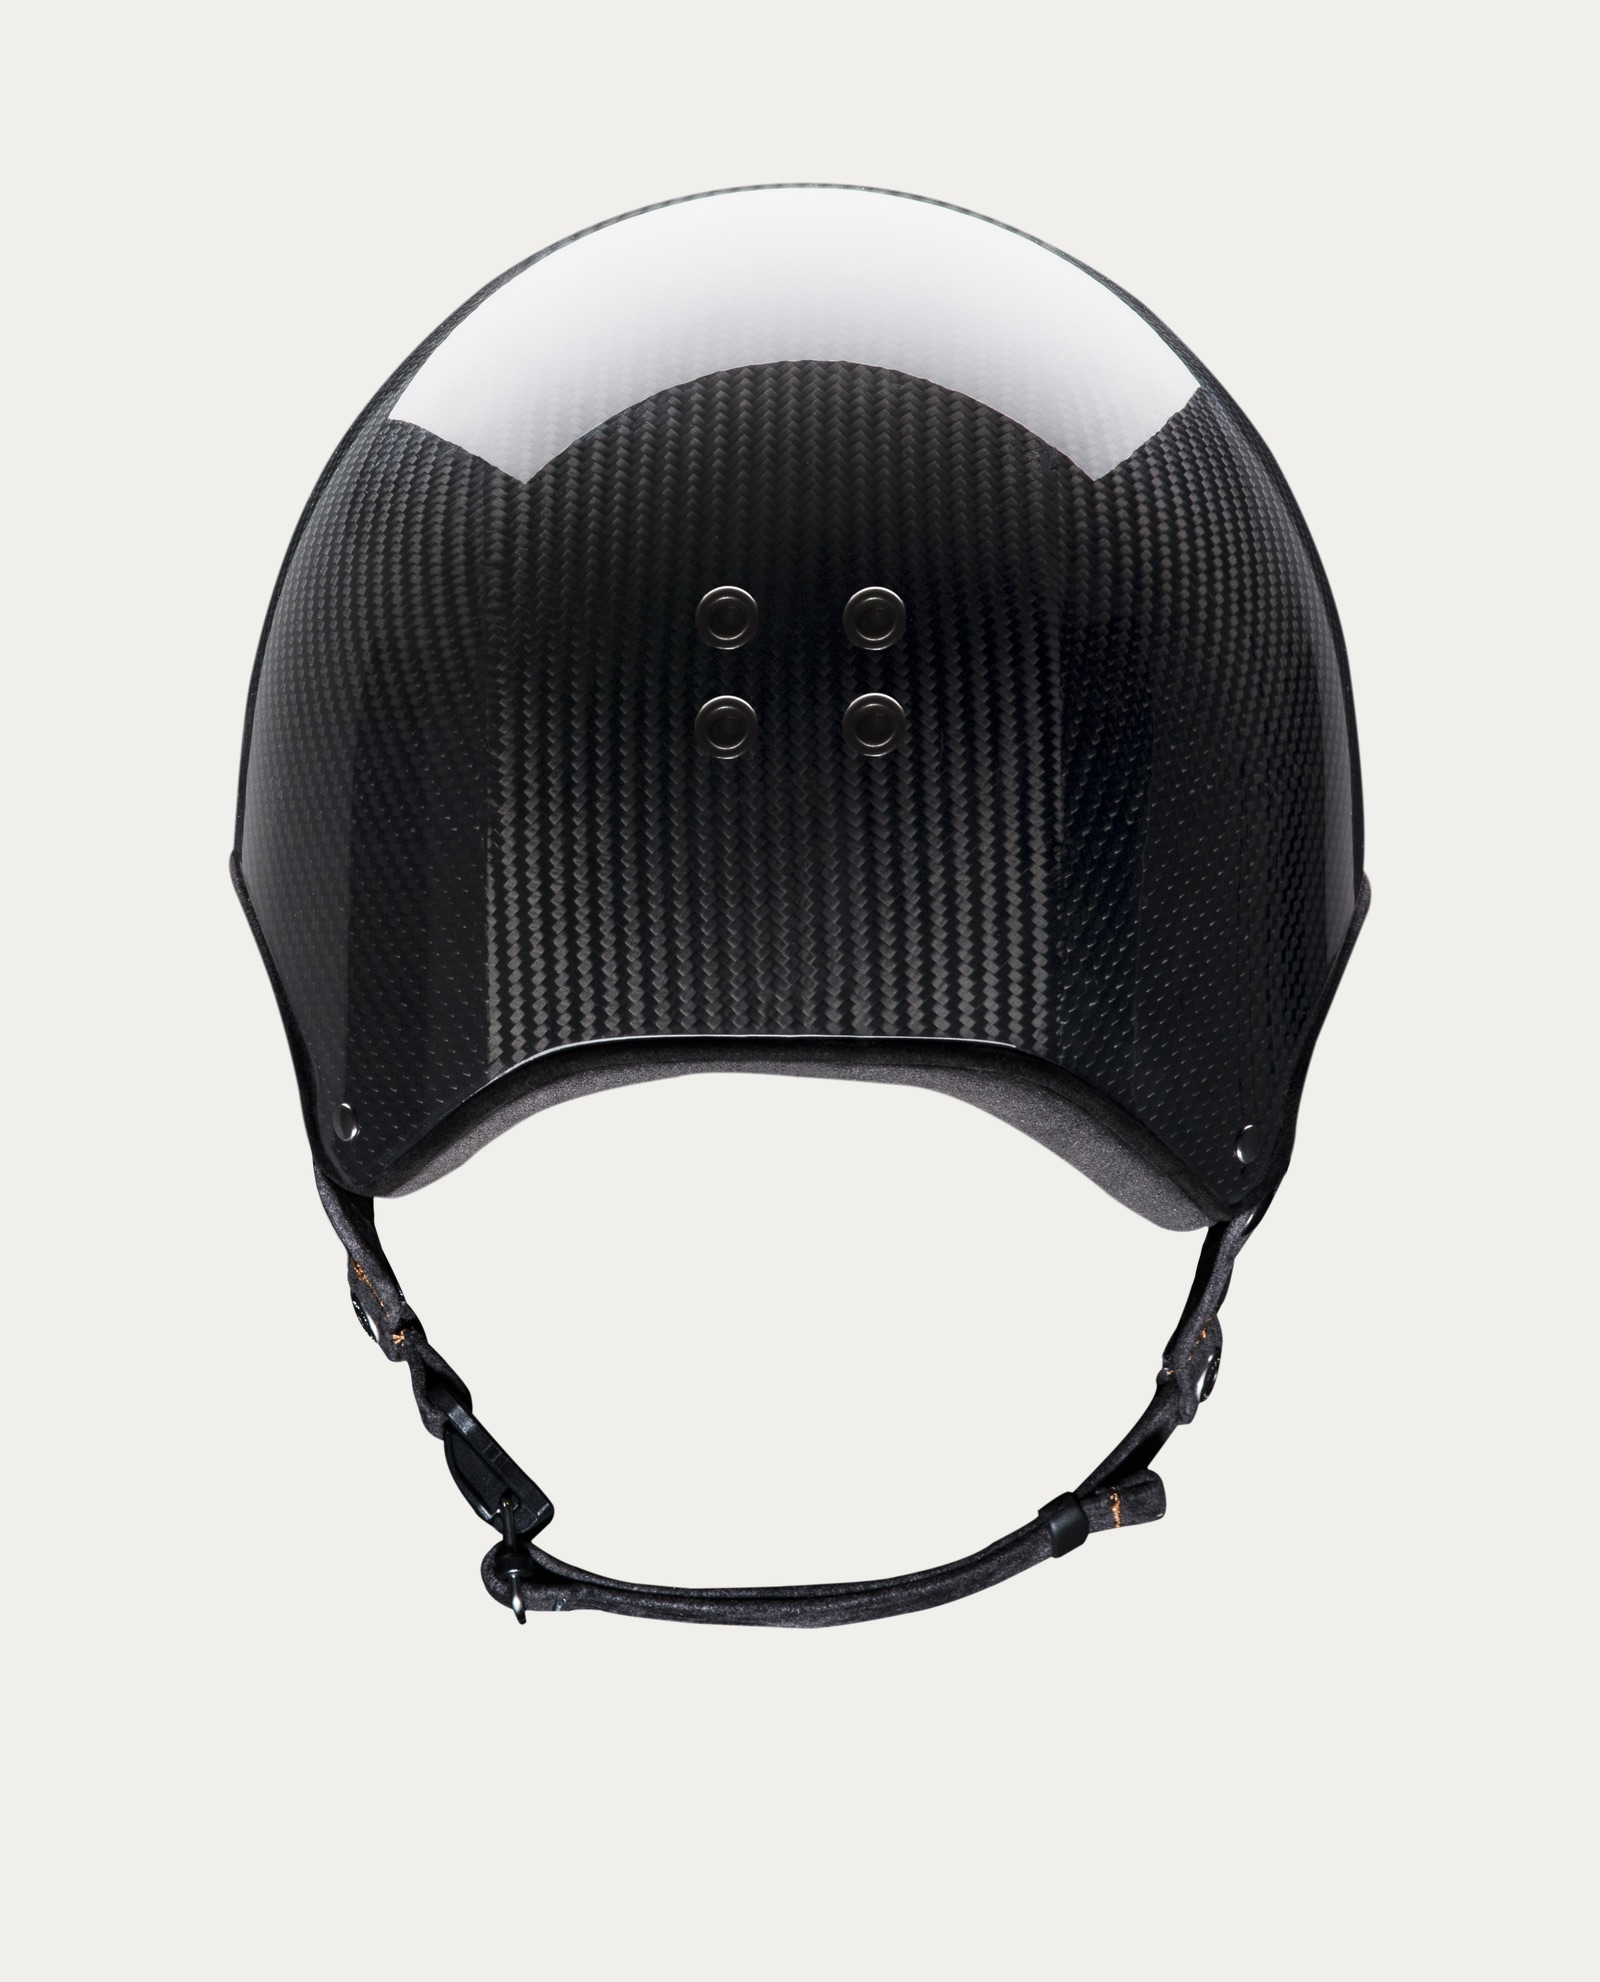 casque_velo_egide_apollo_carbone_1